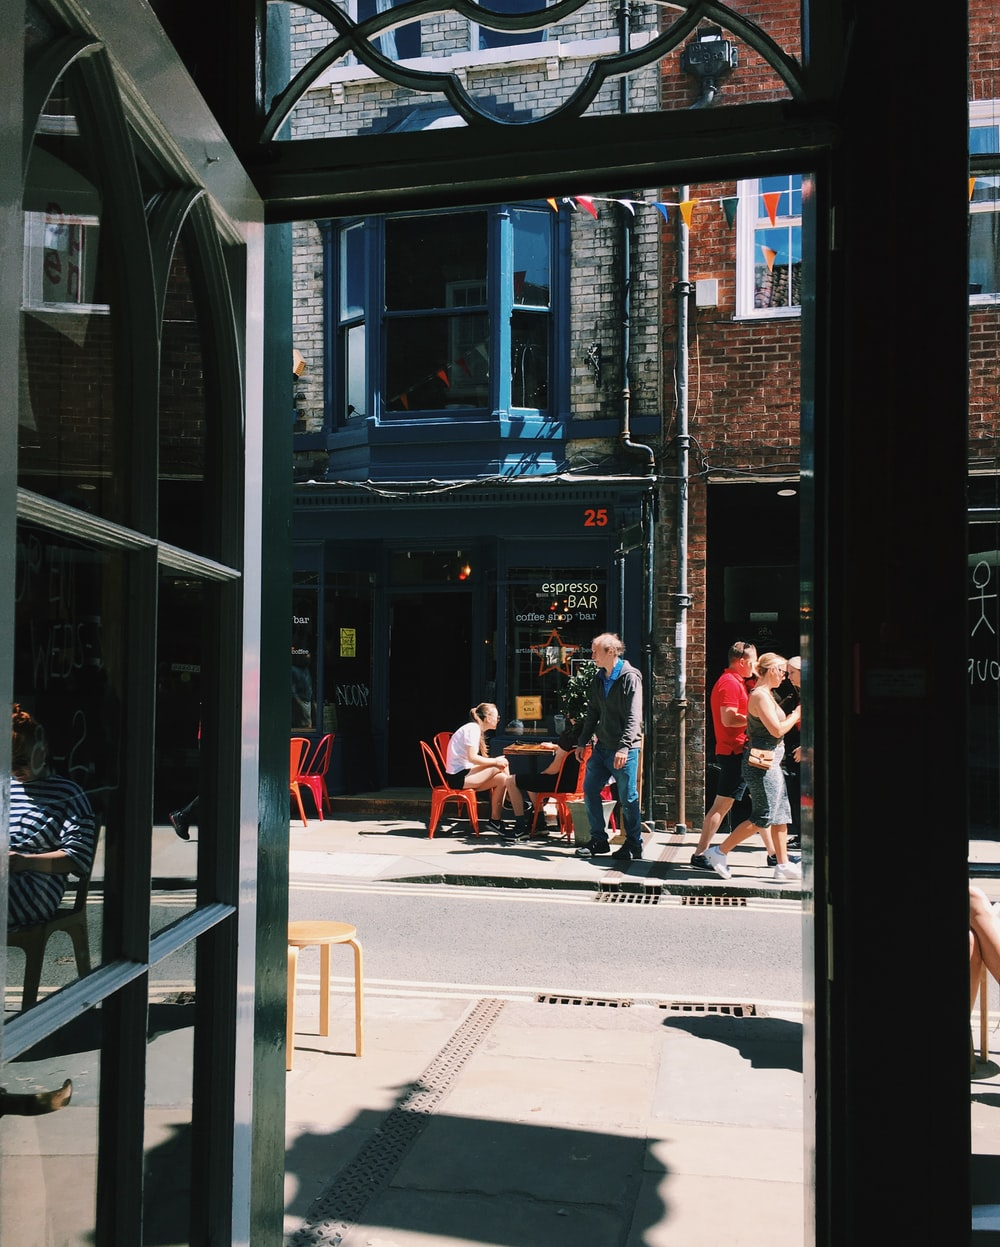 people sitting on bench in front of store during daytime